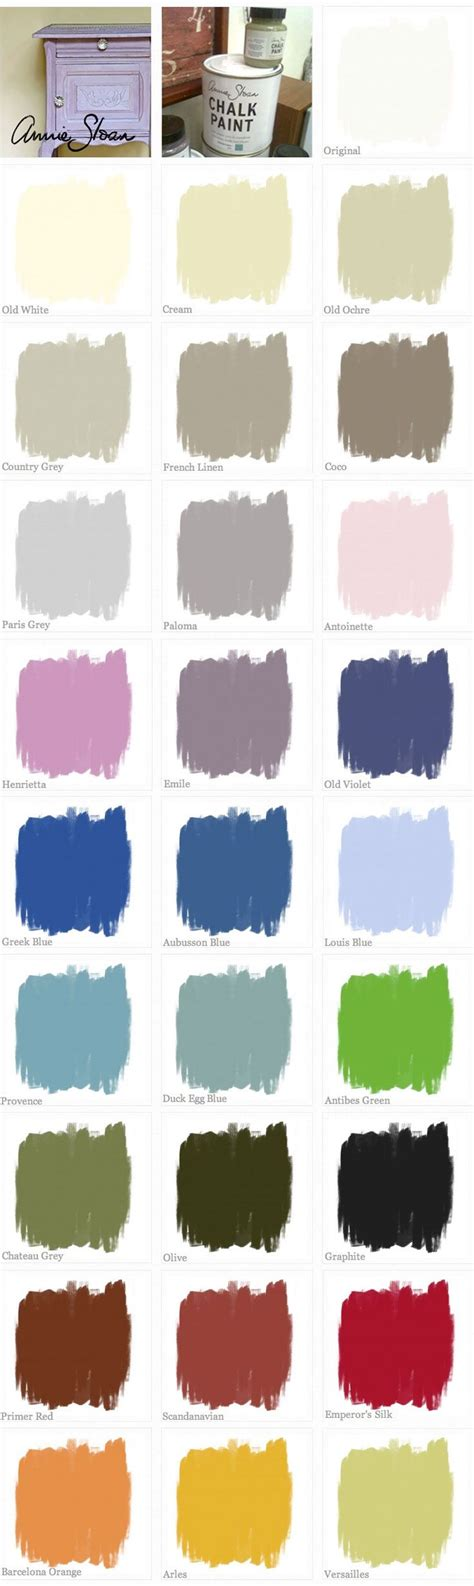 chalk paint sloan chalk paint color swatches